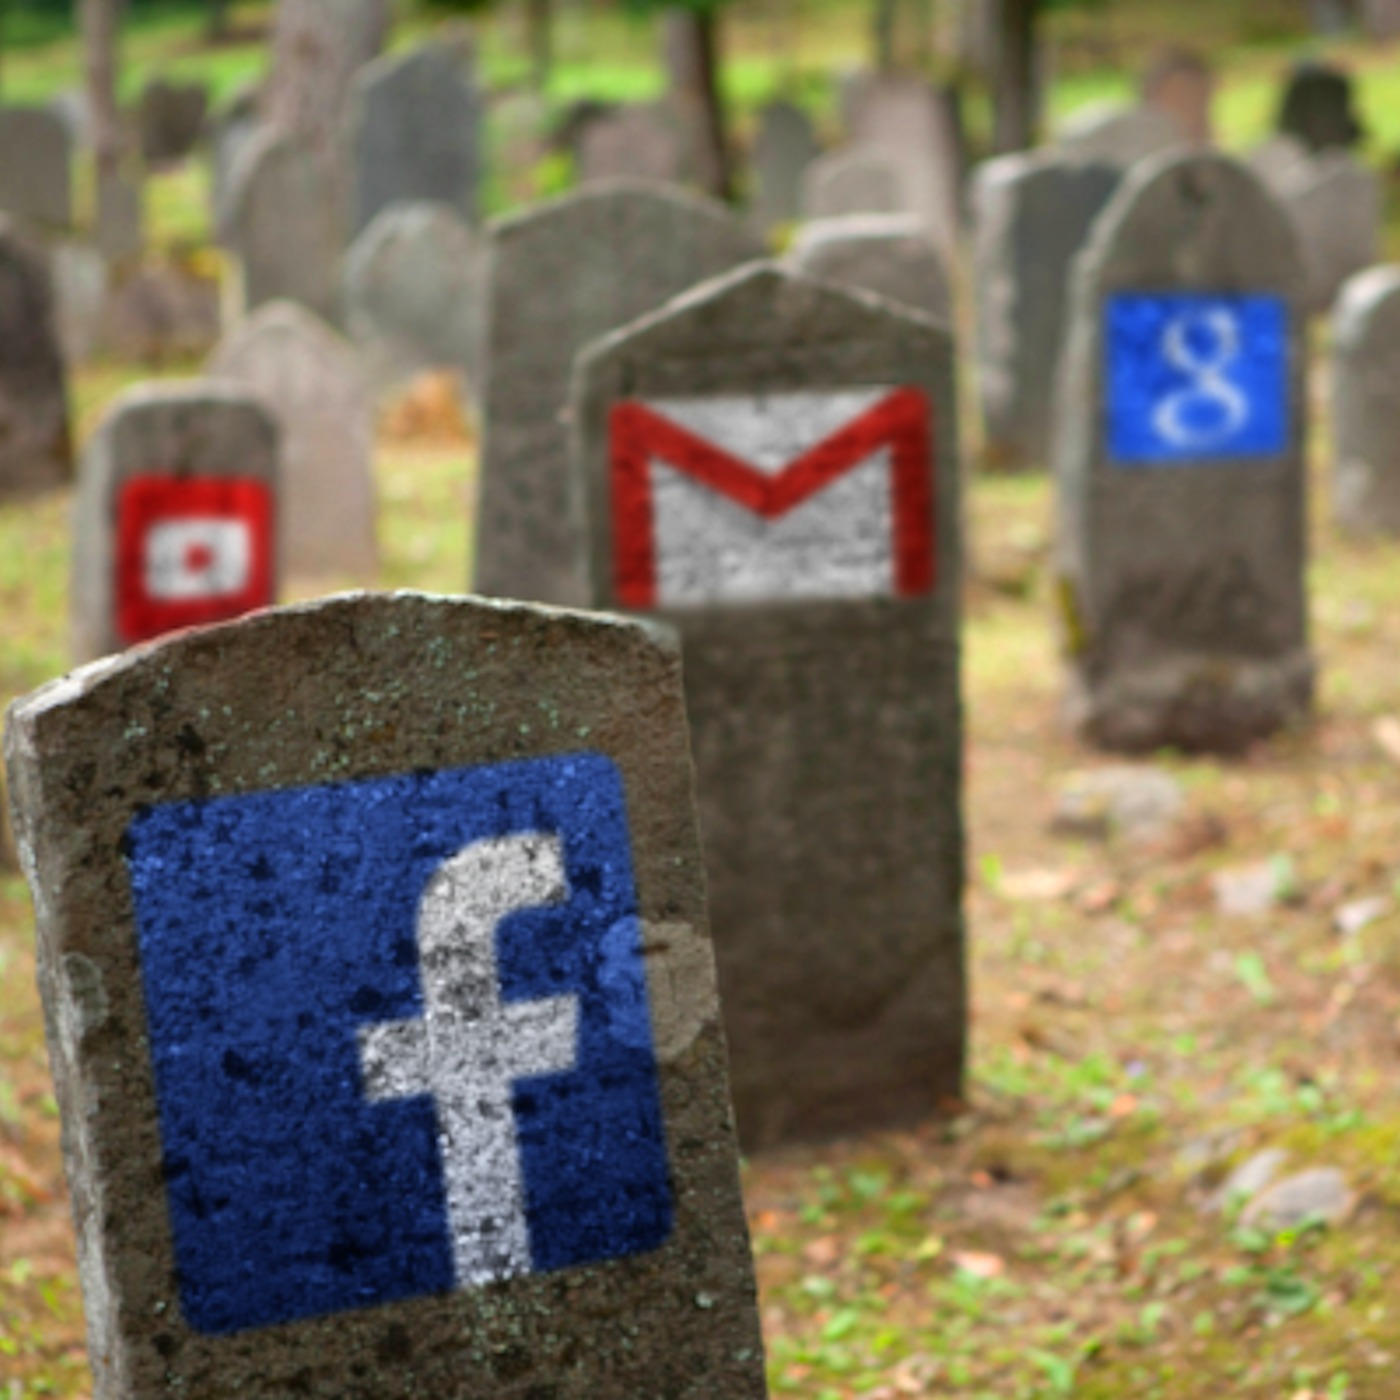 What happens to your data when you die?